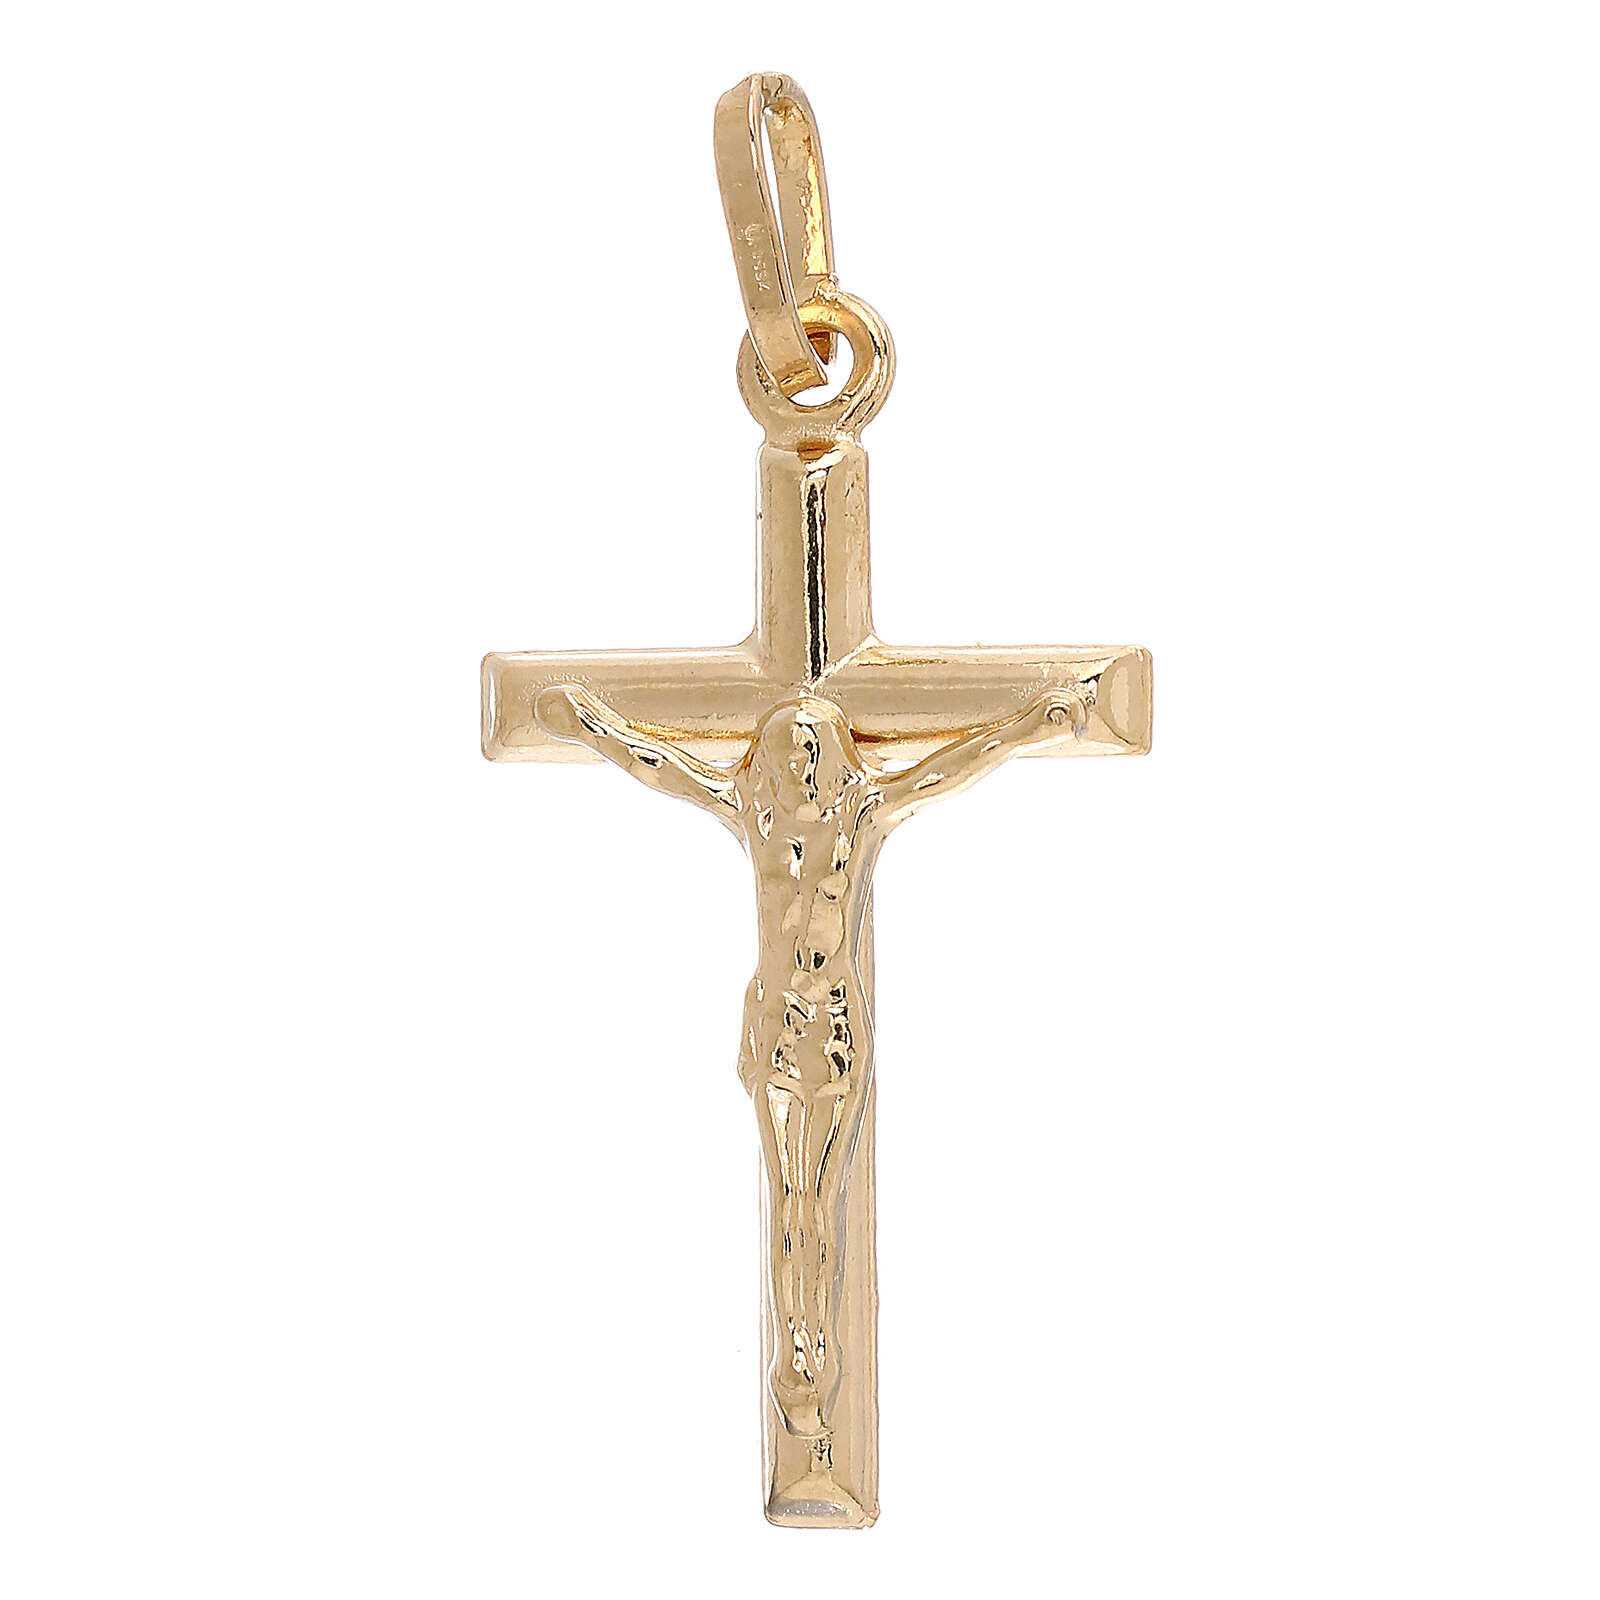 Crucifix pendant squared ends 18-carat yellow gold 1.2 gr 4